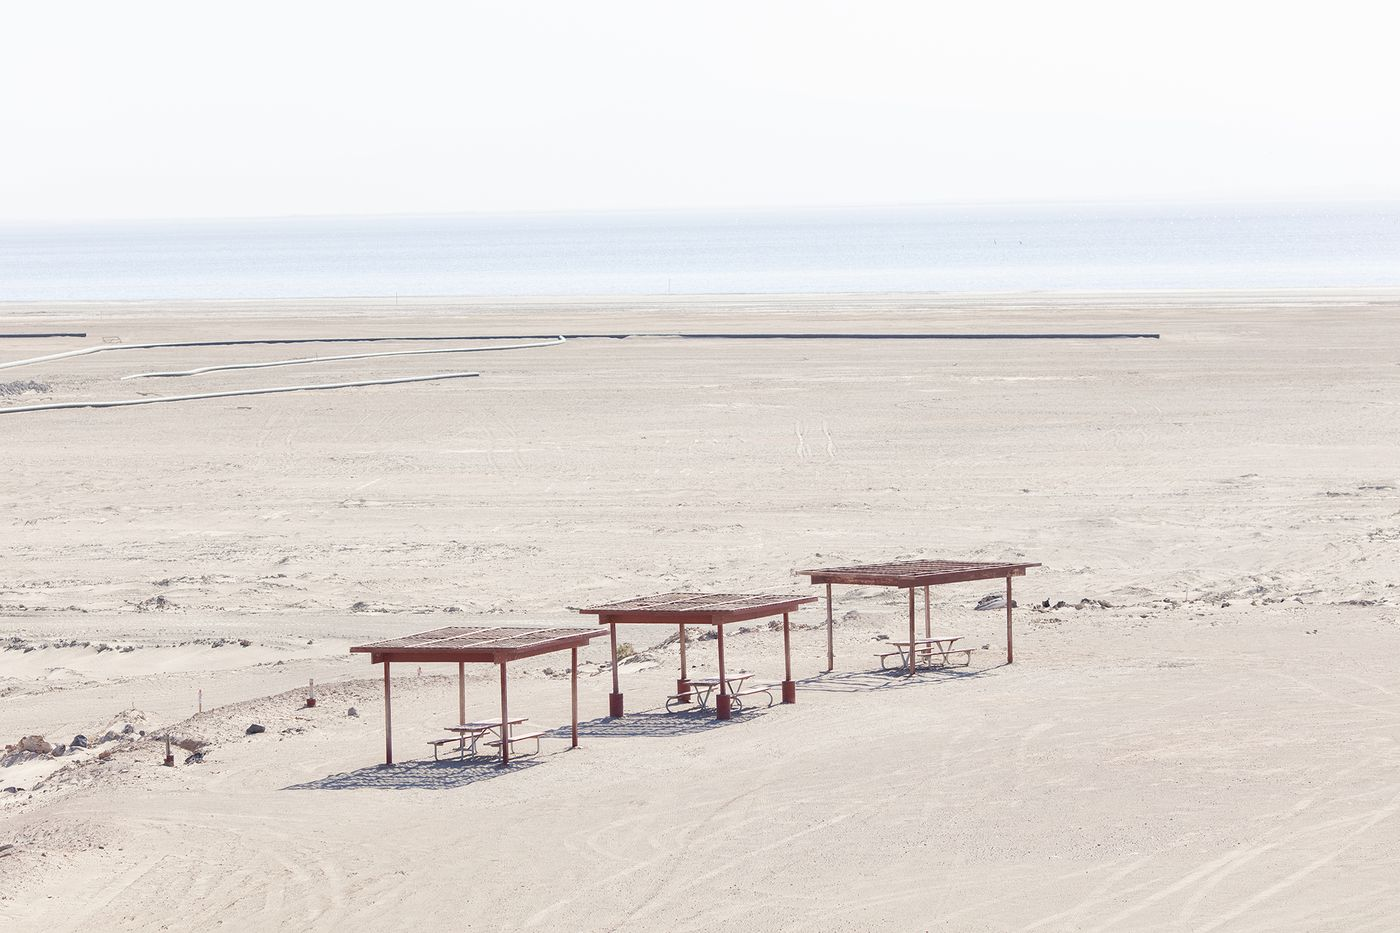 As California's largest lake dries up, it threatens nearby